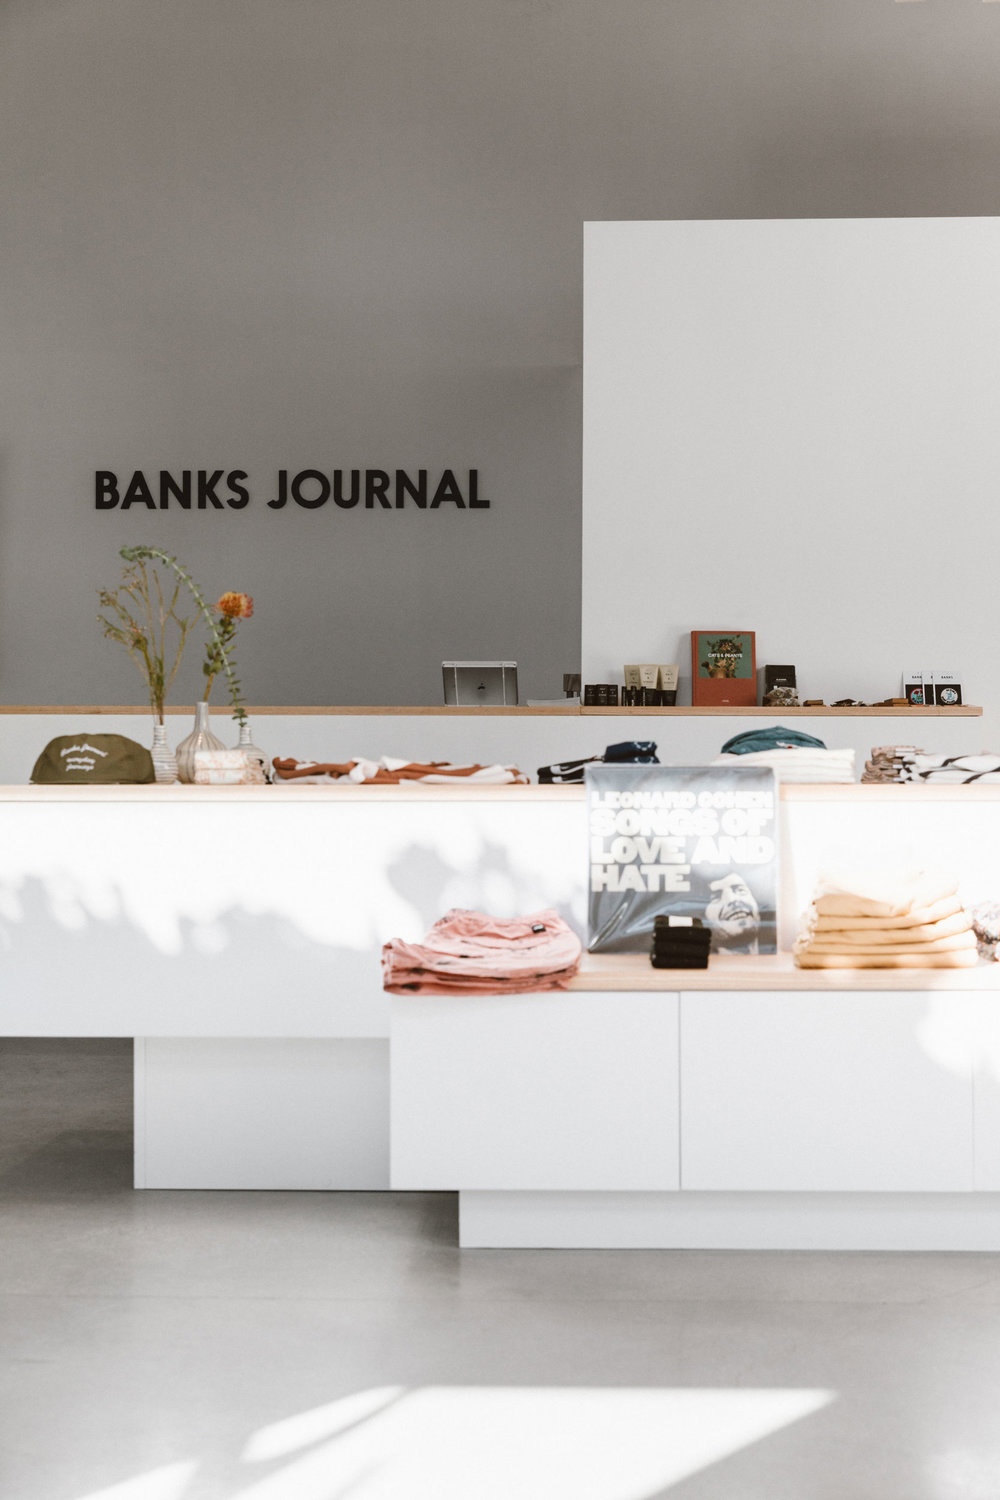 Banks Journal - A really great project